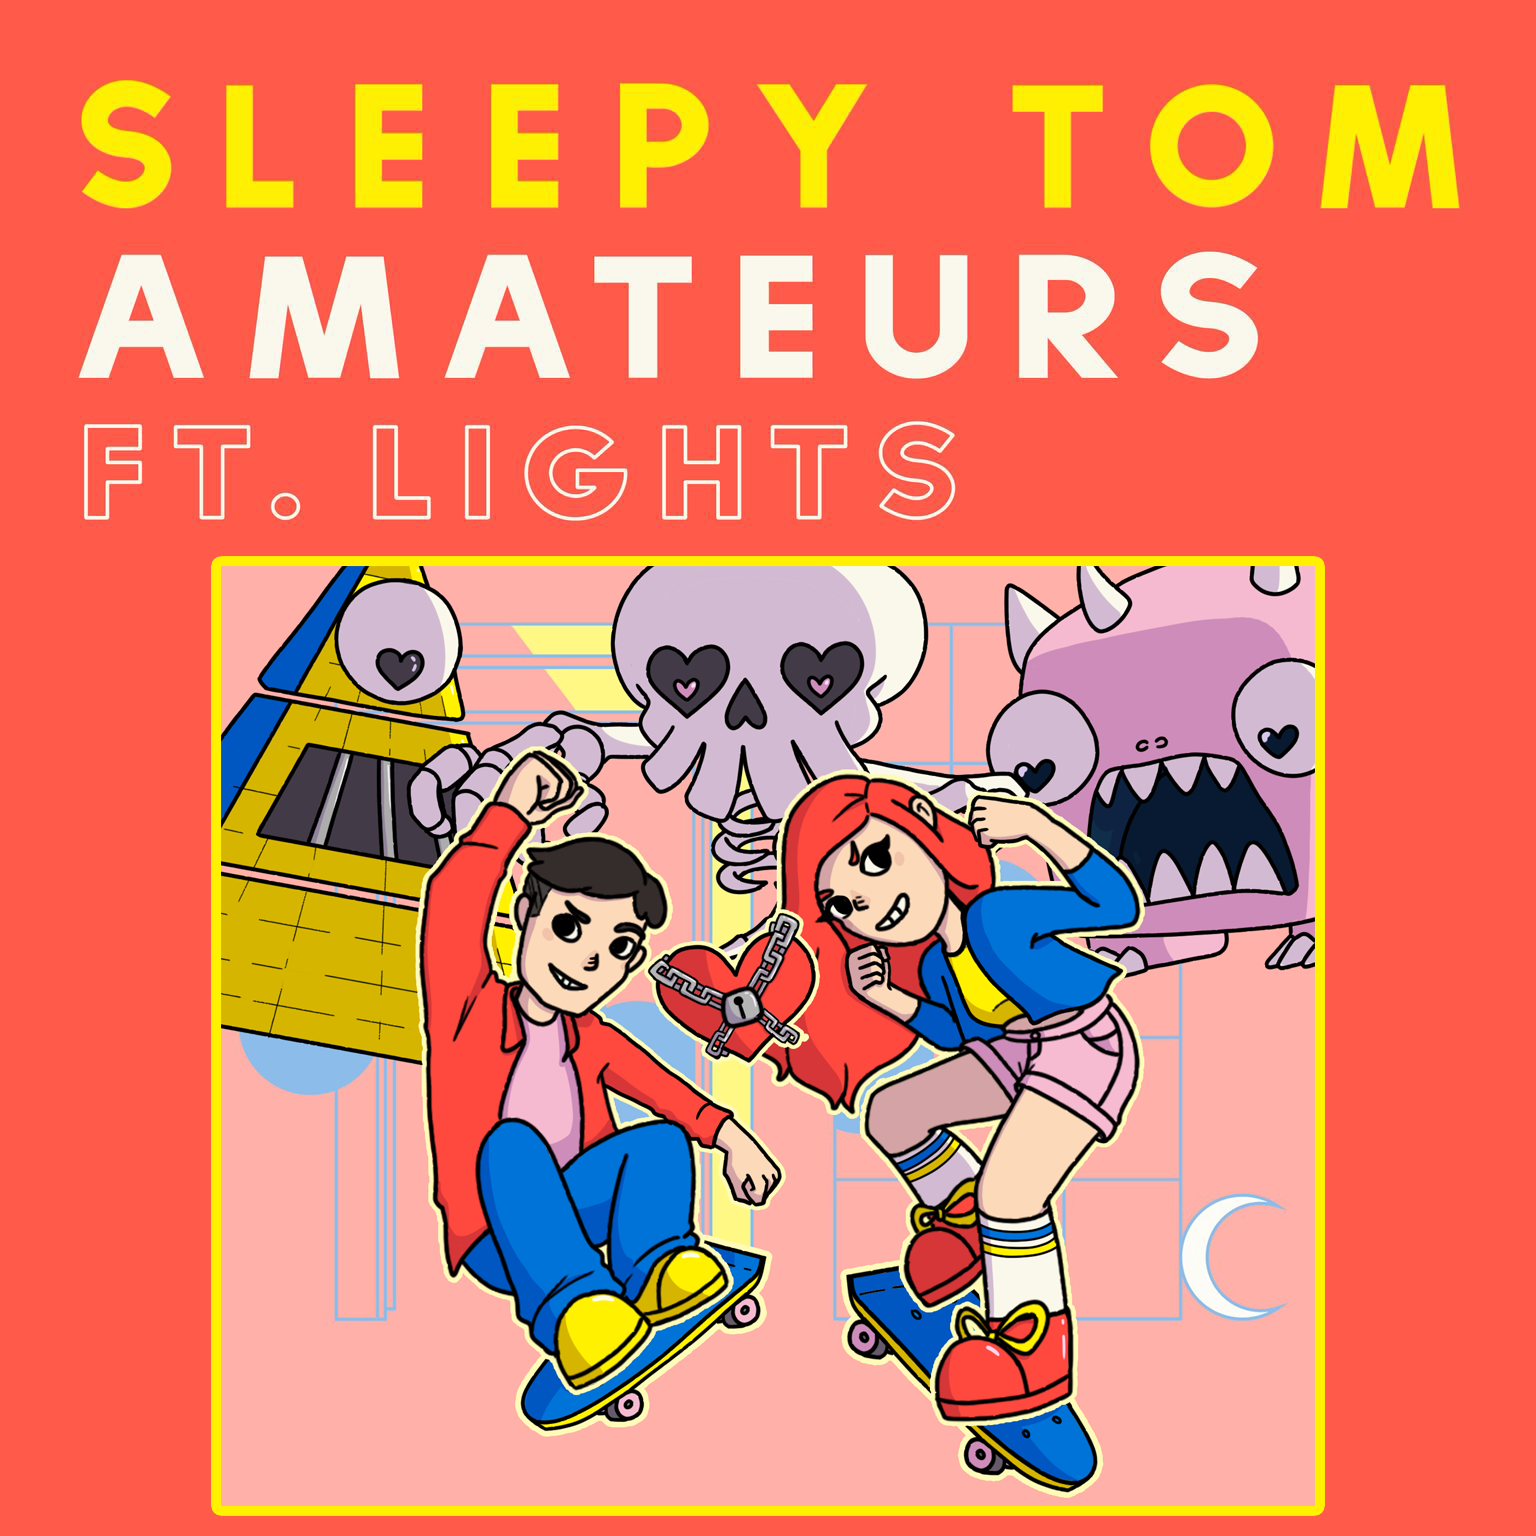 Amateurs   Shoot away epic bosses in this retro inspired arcade game based on Amateurs, the new single by Sleepy Tom featuring Lights!